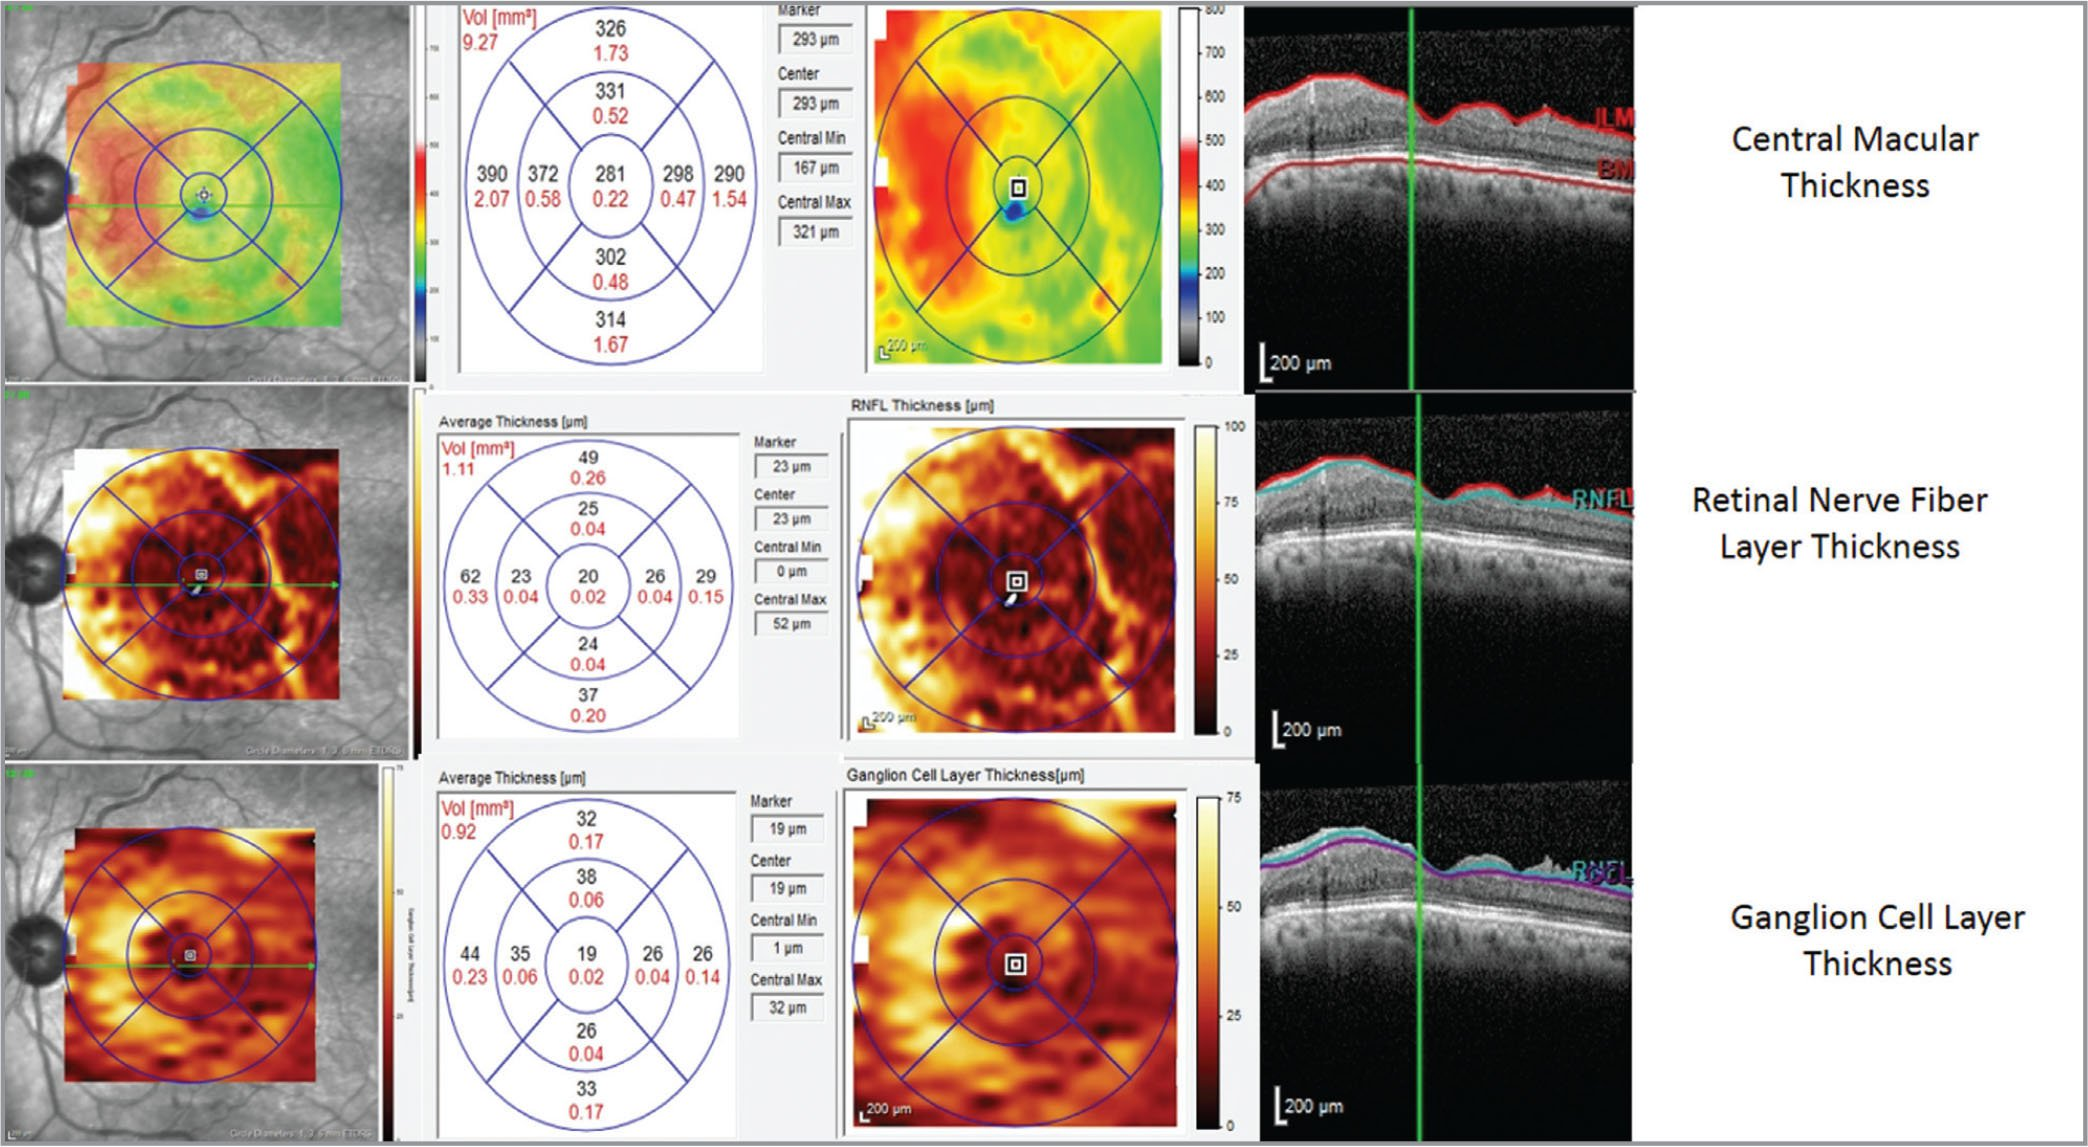 Central macular thickness, retinal nerve fiber layer, and ganglion cell layer segmentations.